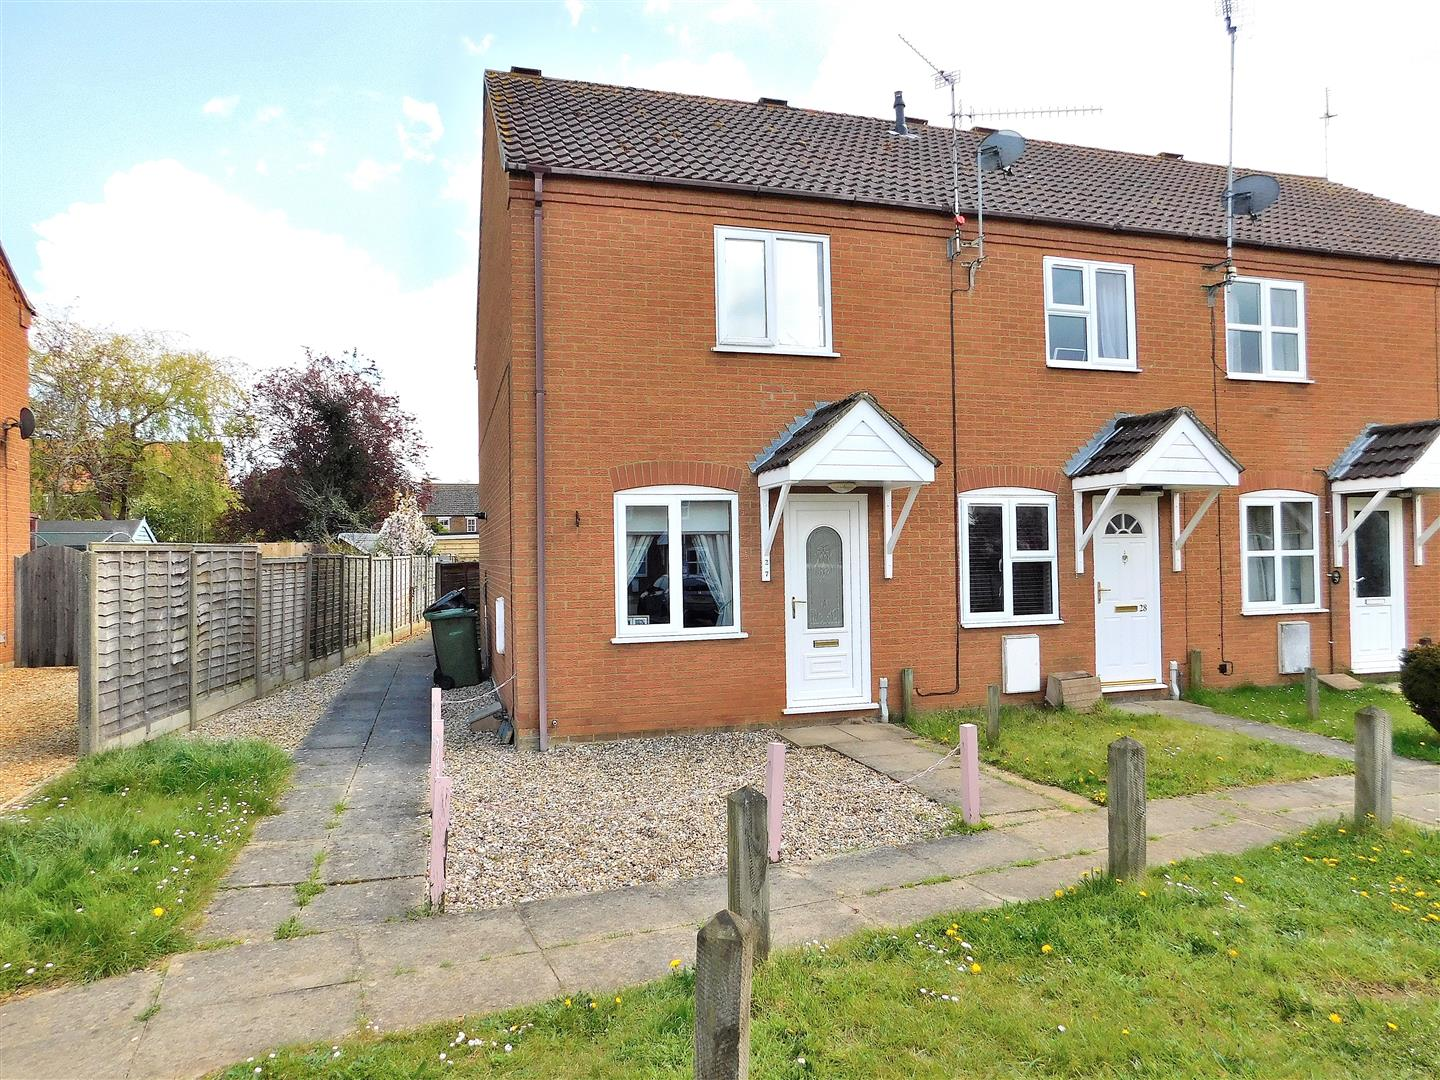 2 bed end of terrace house for sale in Wallace Twite Way, King's Lynn, PE31